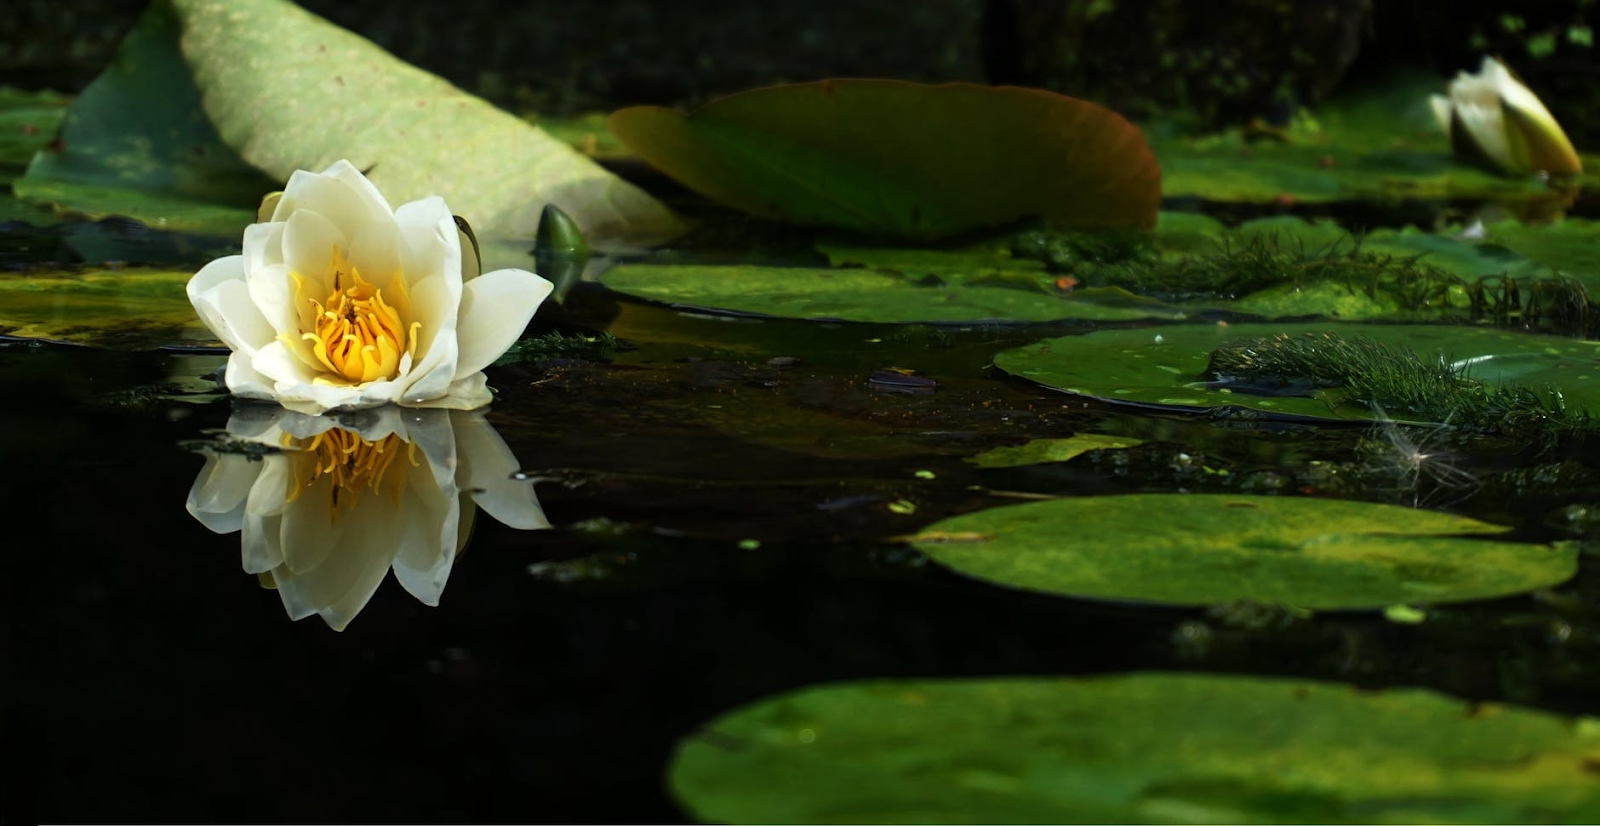 lily pads in a pond.